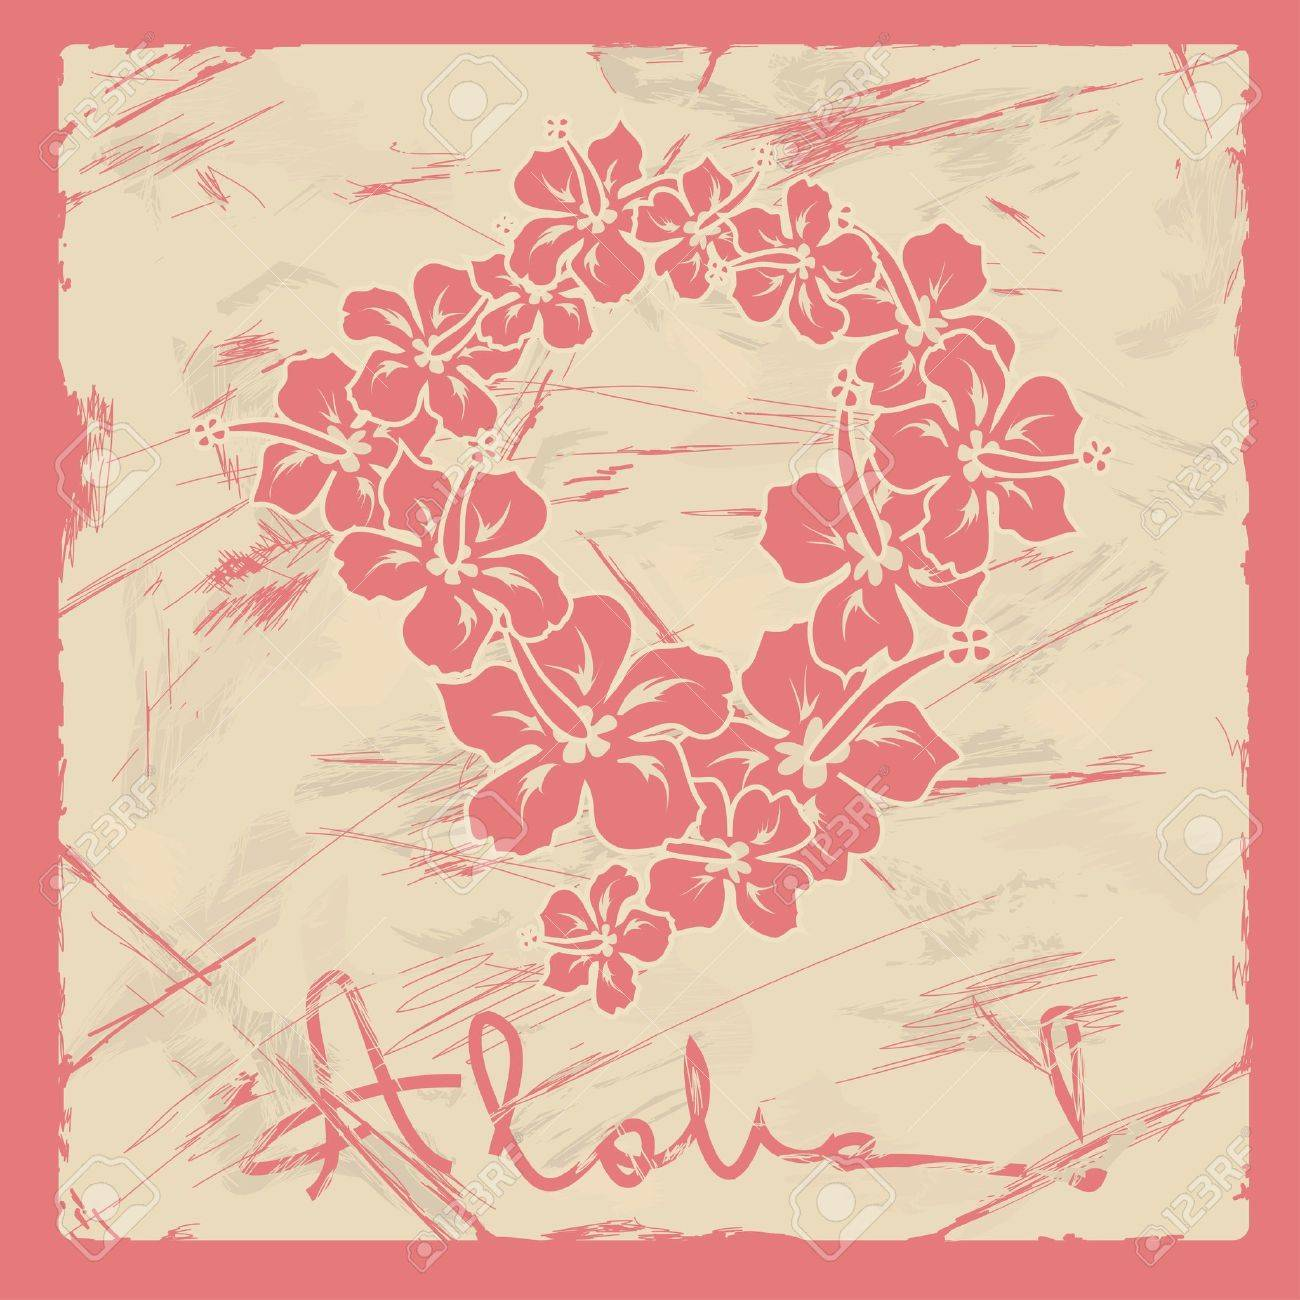 Illustration of hawaiian flower garland on a retro background illustration of hawaiian flower garland on a retro background stock vector 18853658 izmirmasajfo Images